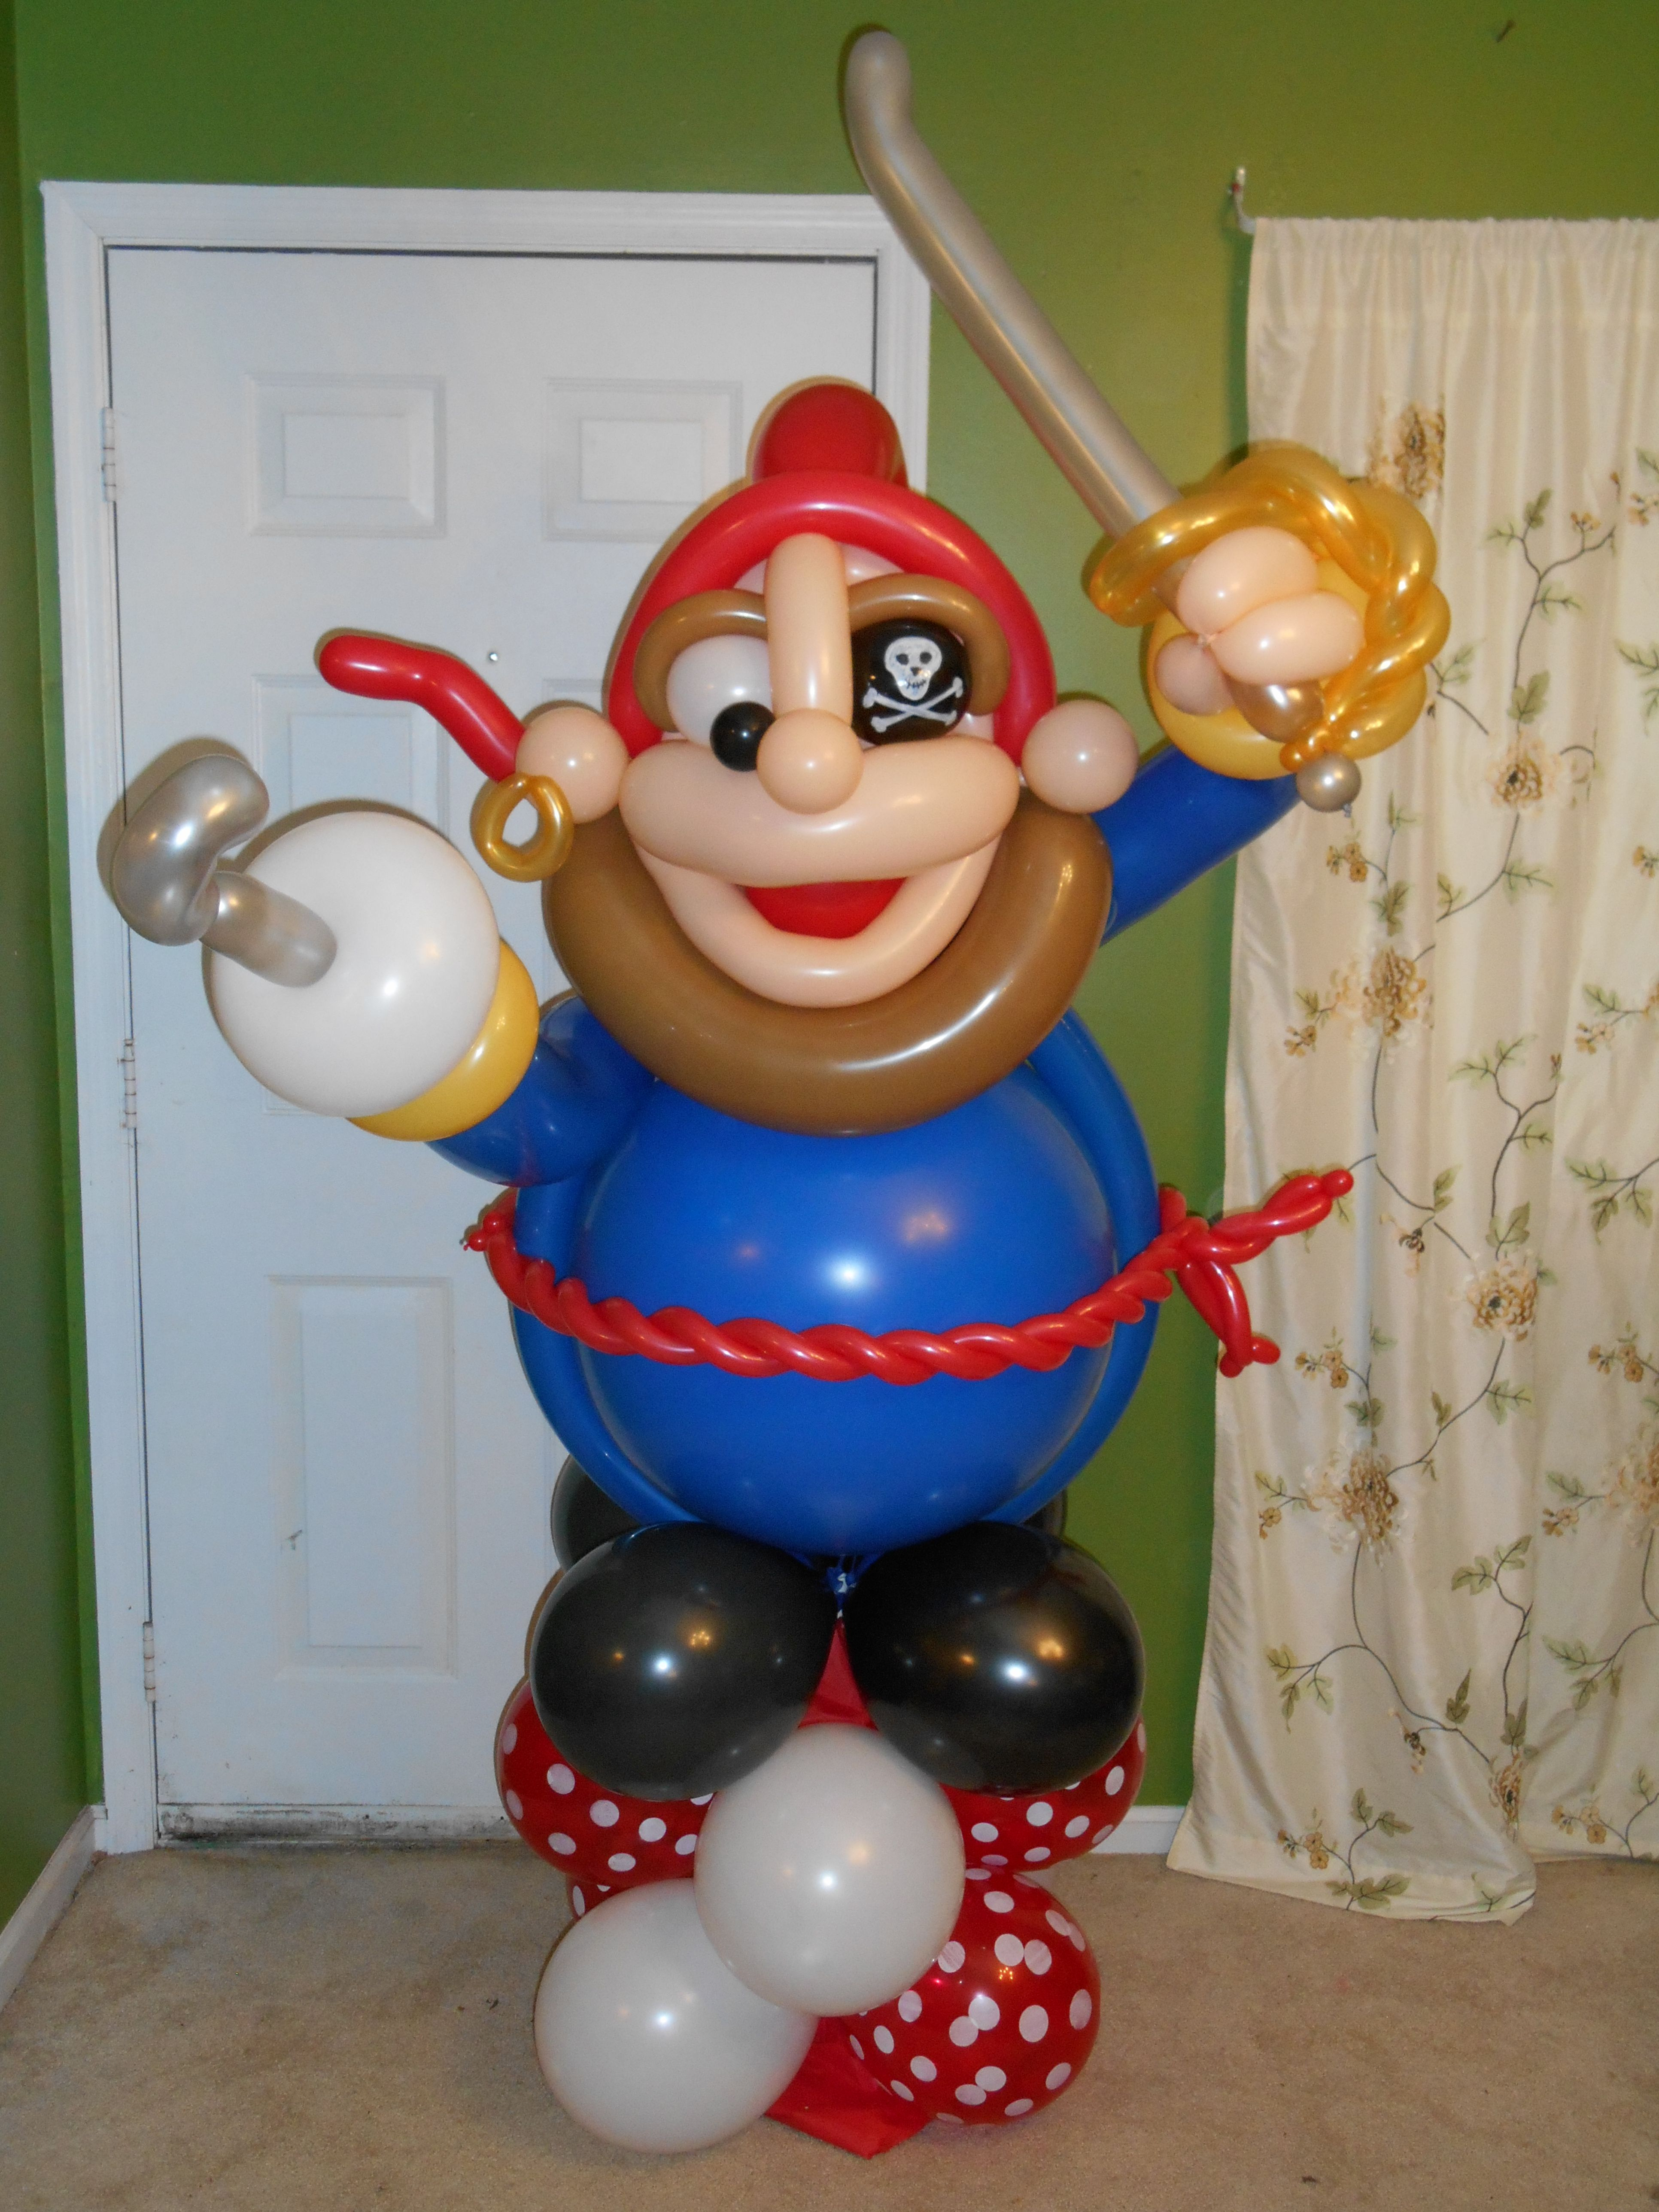 306th Balloon Sculpture Pirate Jumbo With Images Balloon